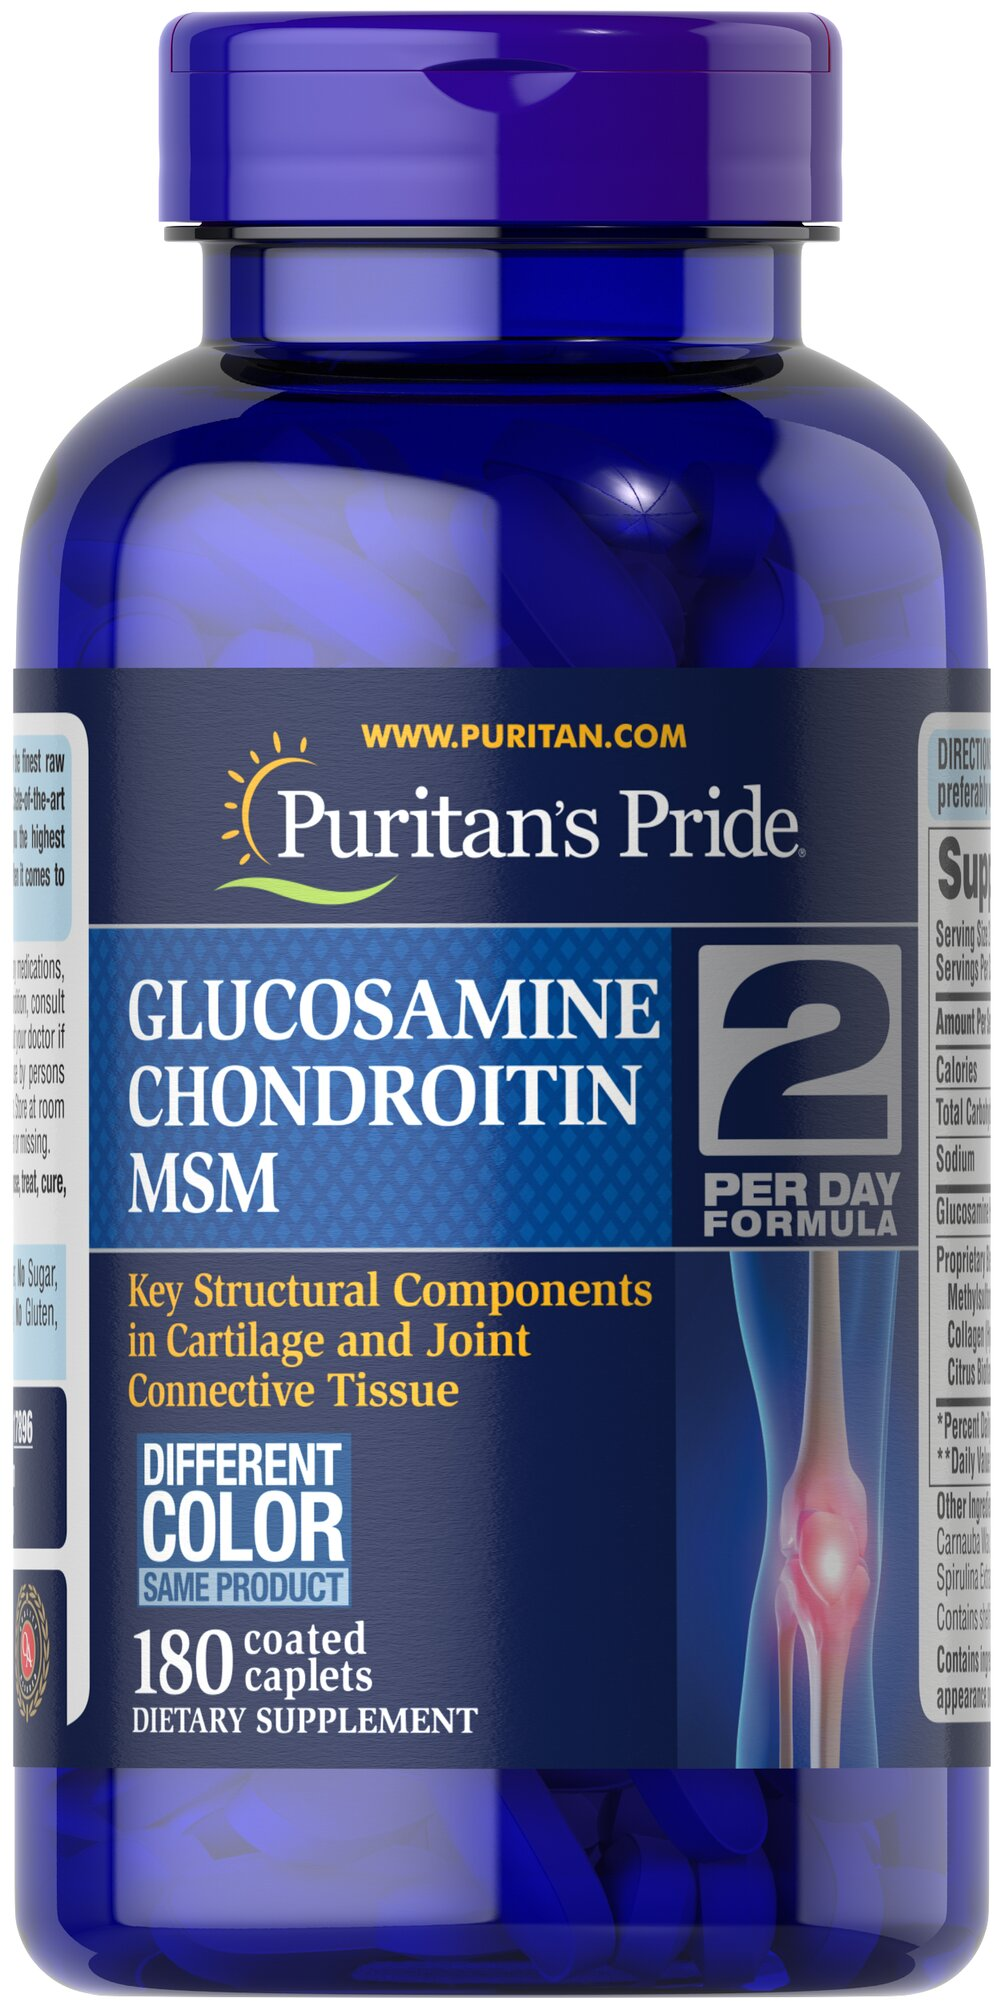 Triple Strength Glucosamine, Chondroitin & MSM Joint Soother® <p>Lubricates joints to improve flexibility**</p><p>Supports connective tissue in and around the joints**</p><p>Triple Strength Glucosamine, Chondroitin and MSM is the most powerful joint soother yet!** Just two caplets per day will give you triple strength protection with 1500 mg of Glucosamine, and 1700 mg of our joint nourishing proprietary blend.**</p> 180 Caplets  $39.99